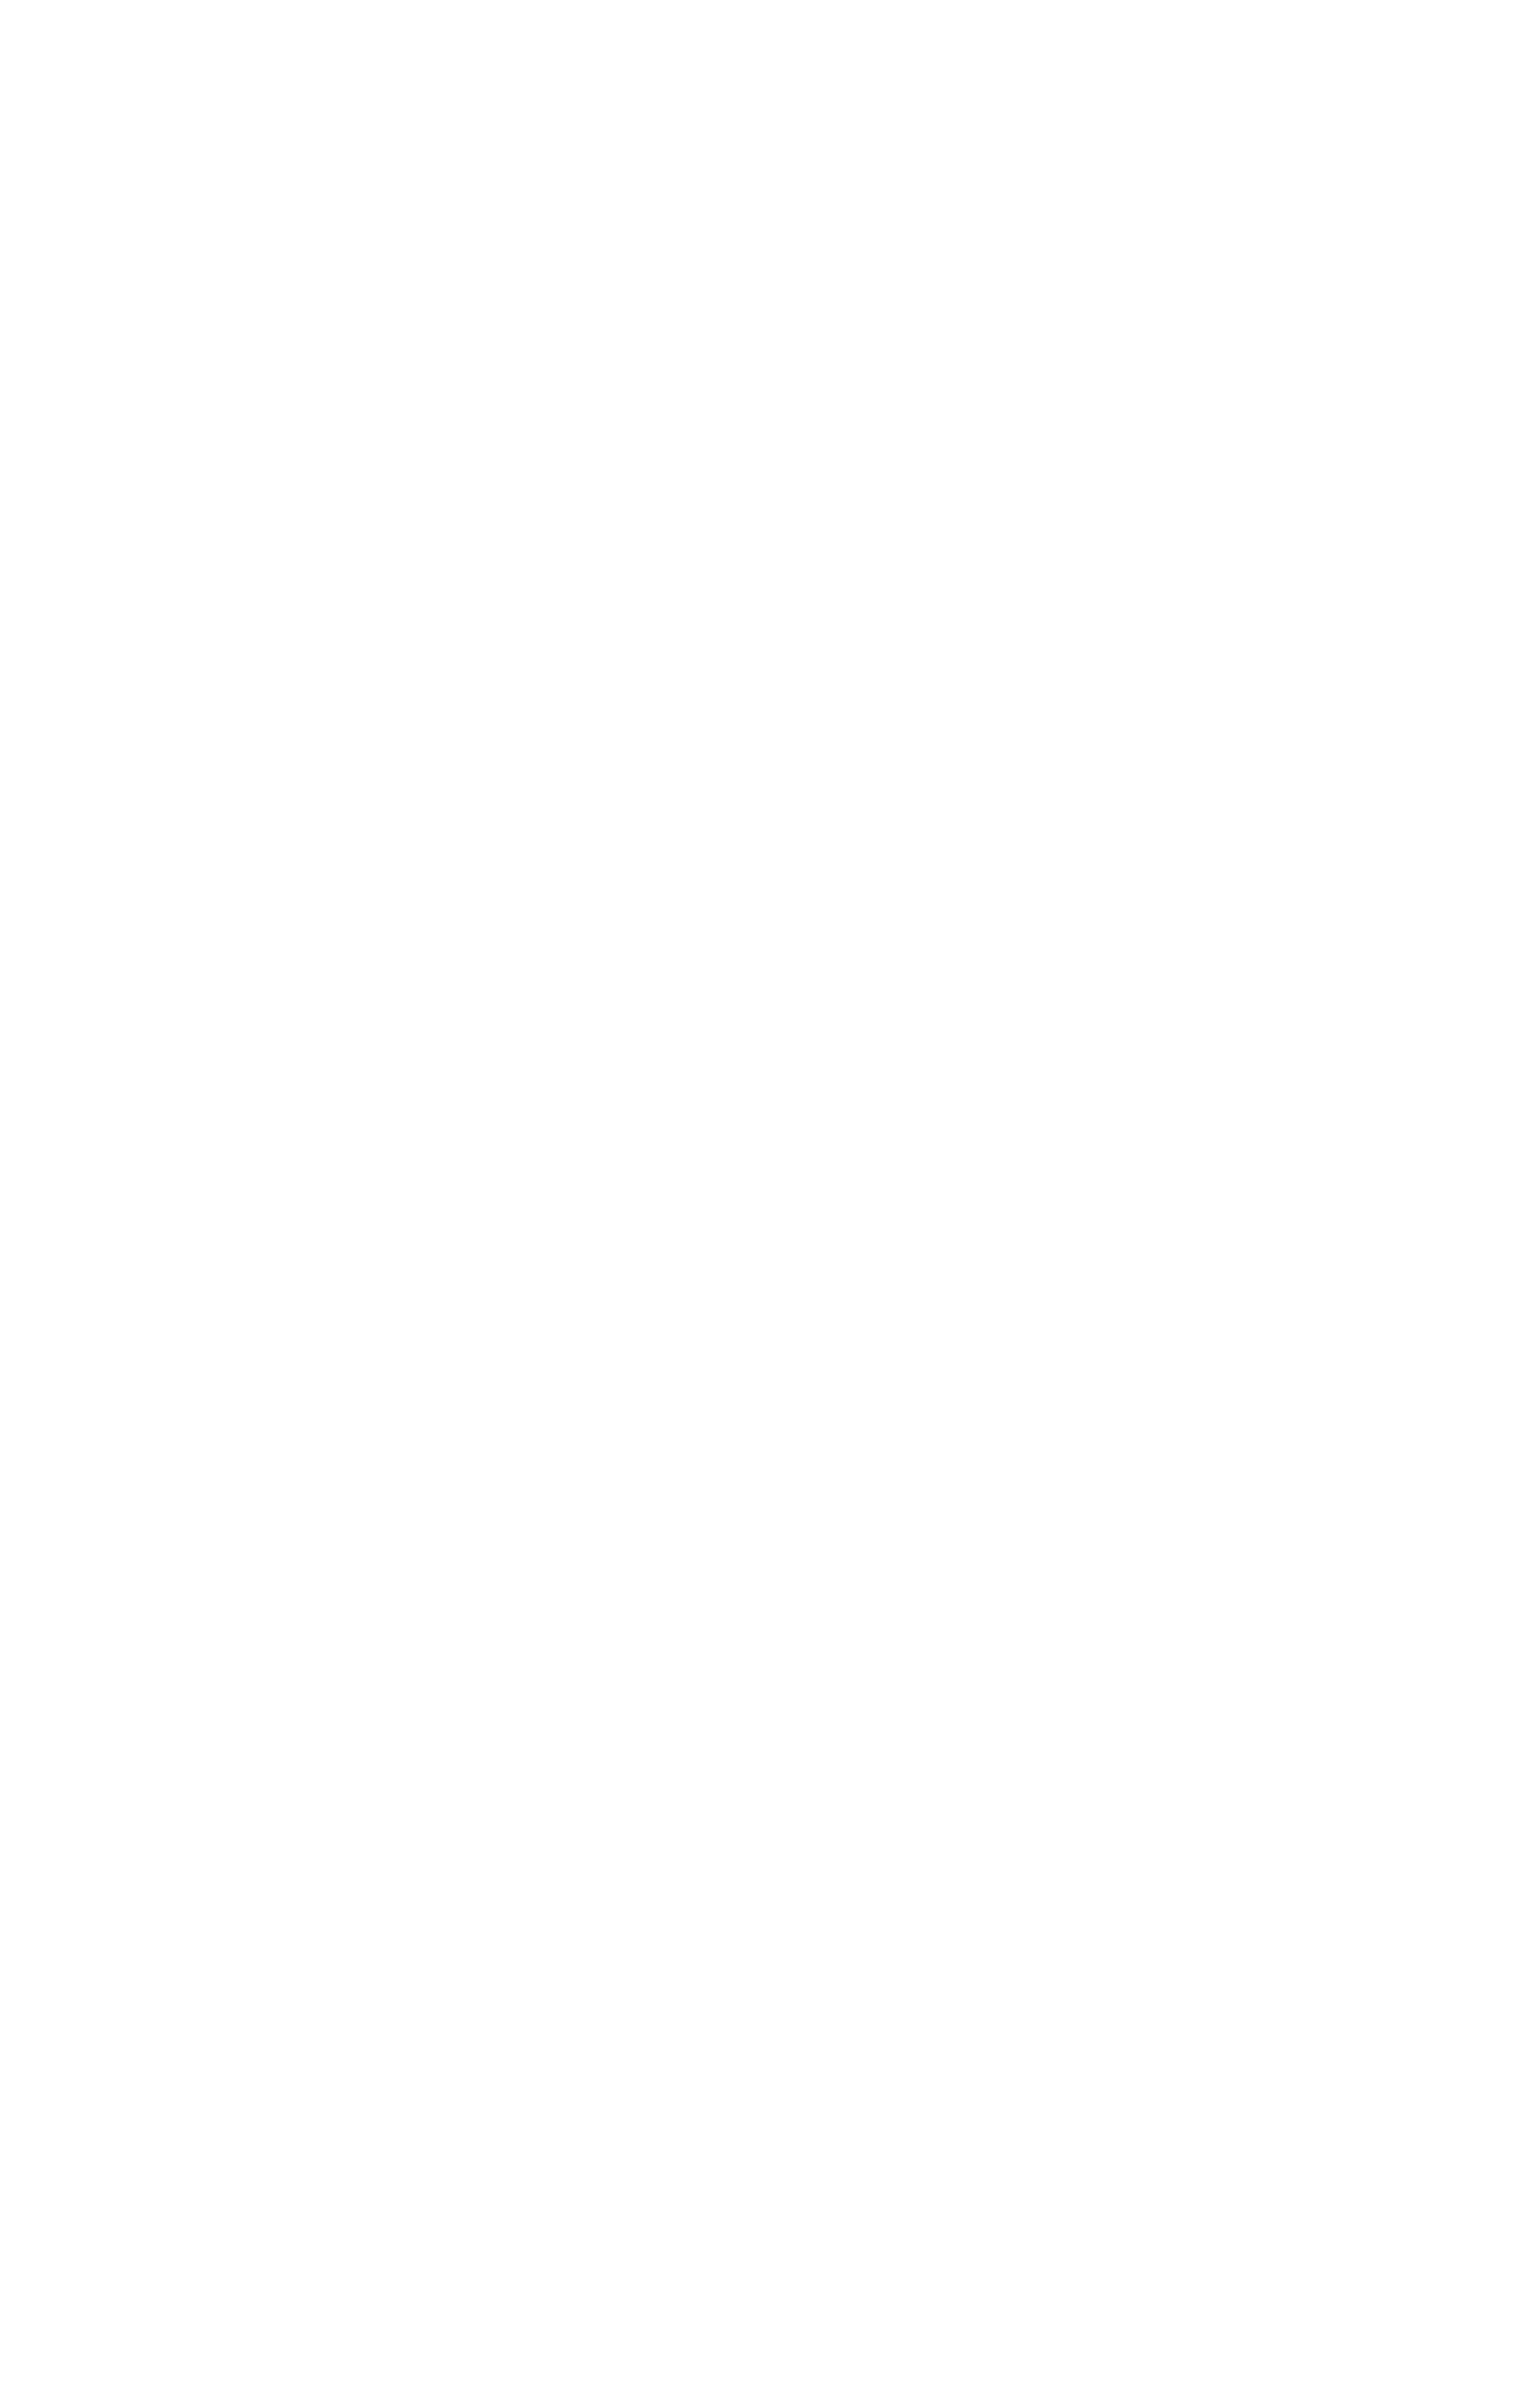 Capability Statement Designs by Kat